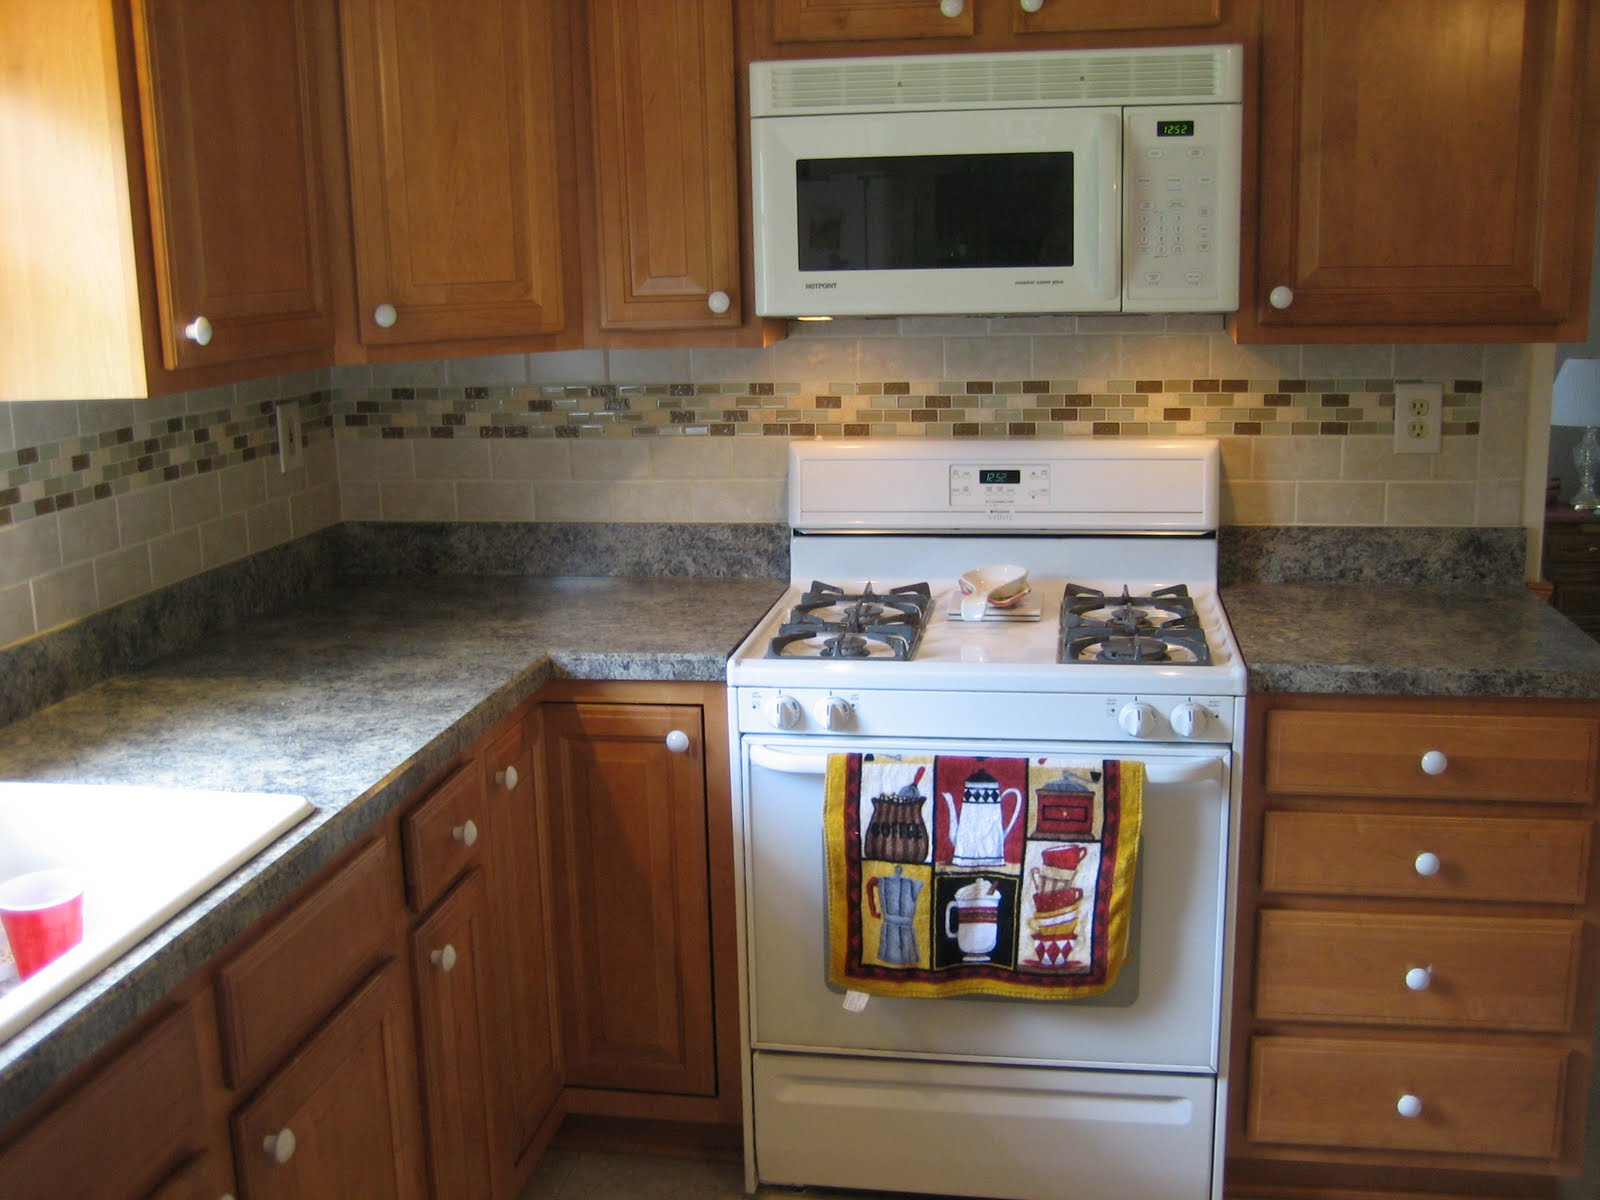 Ceramic Tile Backsplash Kitchen Ideas Cellerall Small Simple Photo Korean  Black Splash Guard Peel And Stick